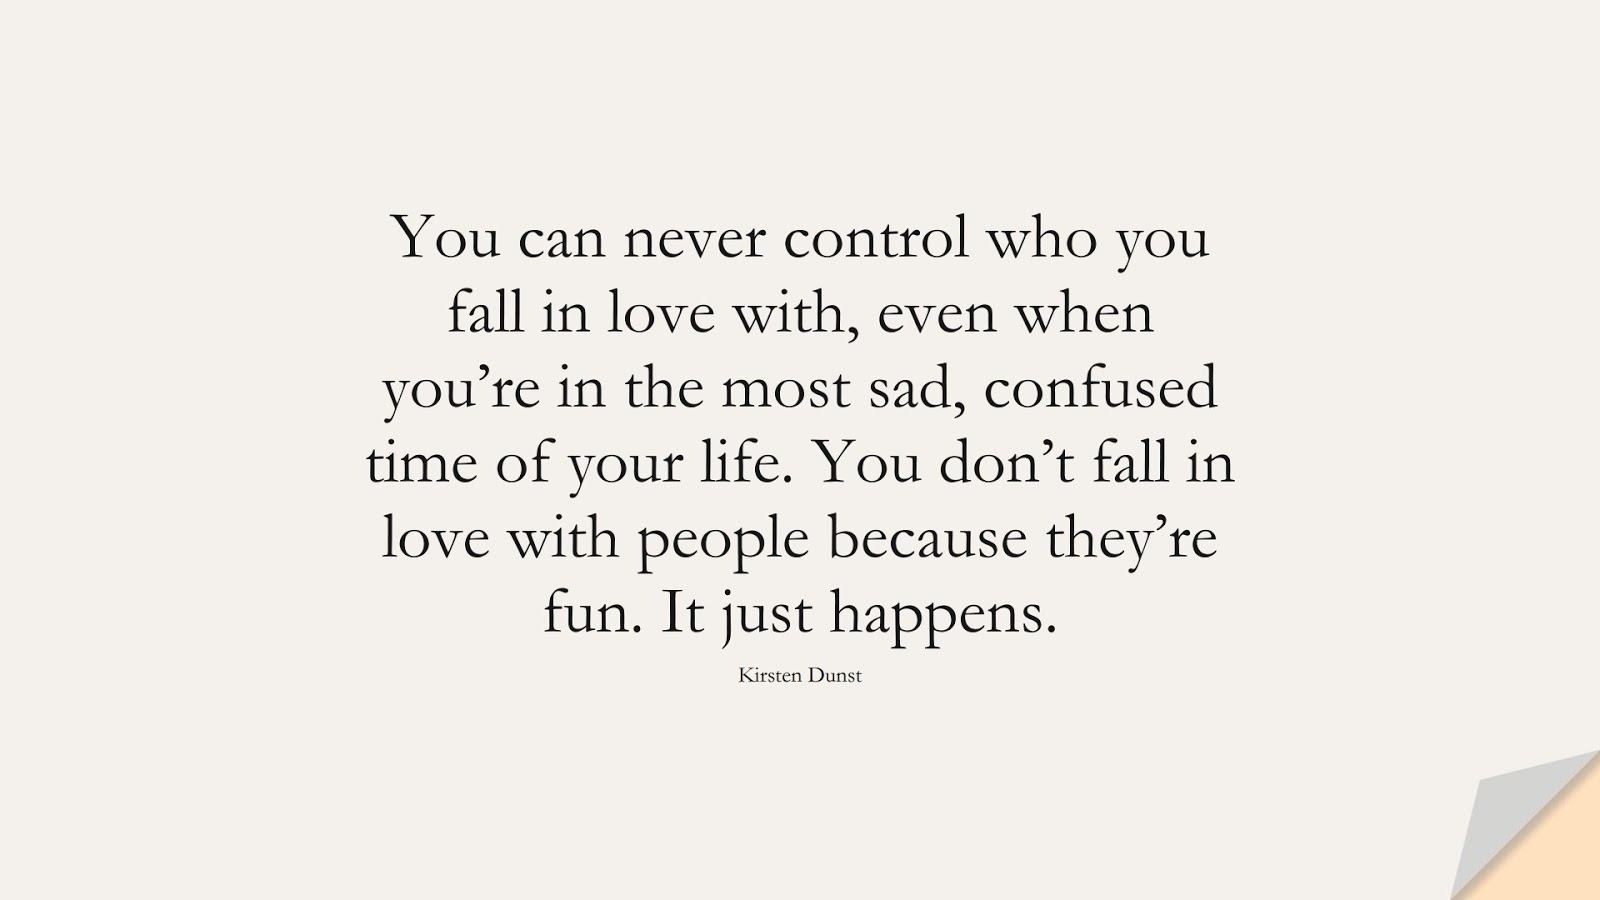 You can never control who you fall in love with, even when you're in the most sad, confused time of your life. You don't fall in love with people because they're fun. It just happens. (Kirsten Dunst);  #SadLoveQuotes